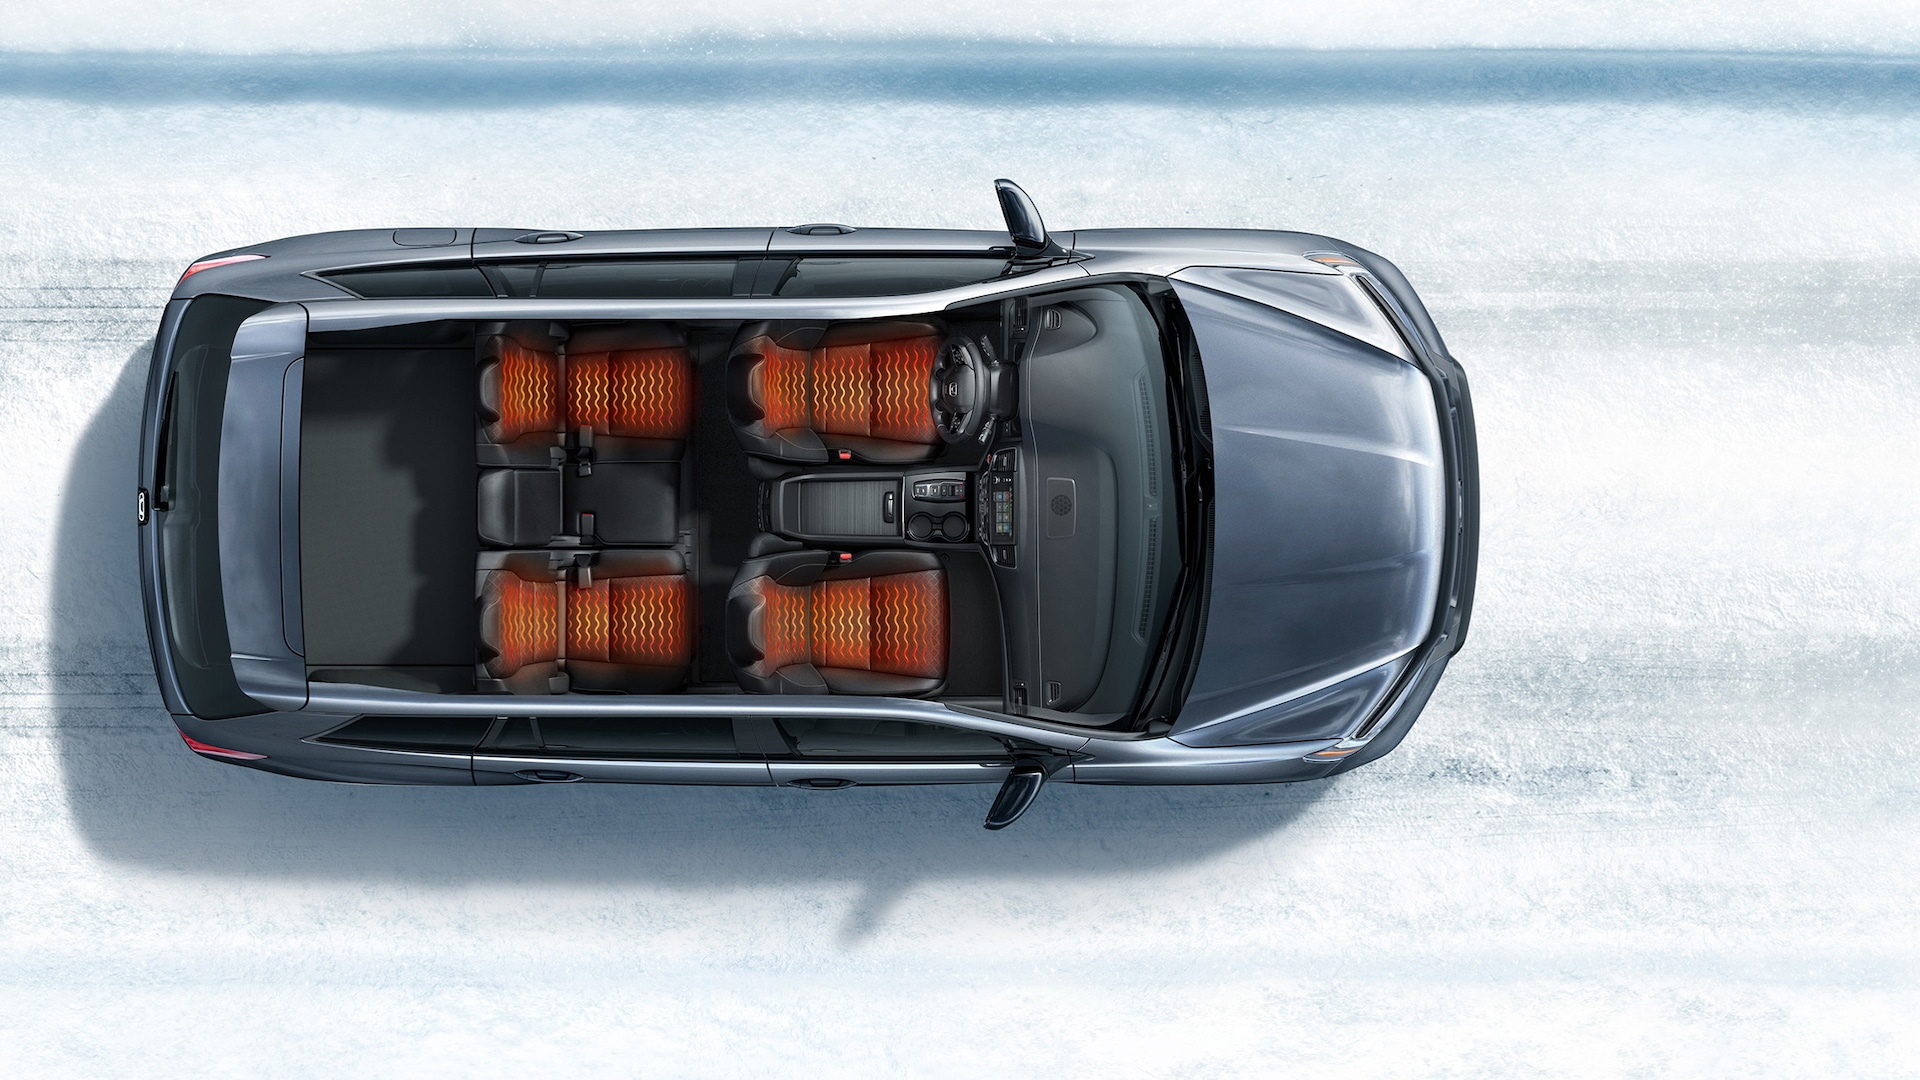 Overhead view of 2020 Honda Passport Elite demonstrating heated seats in a snowy road environment.